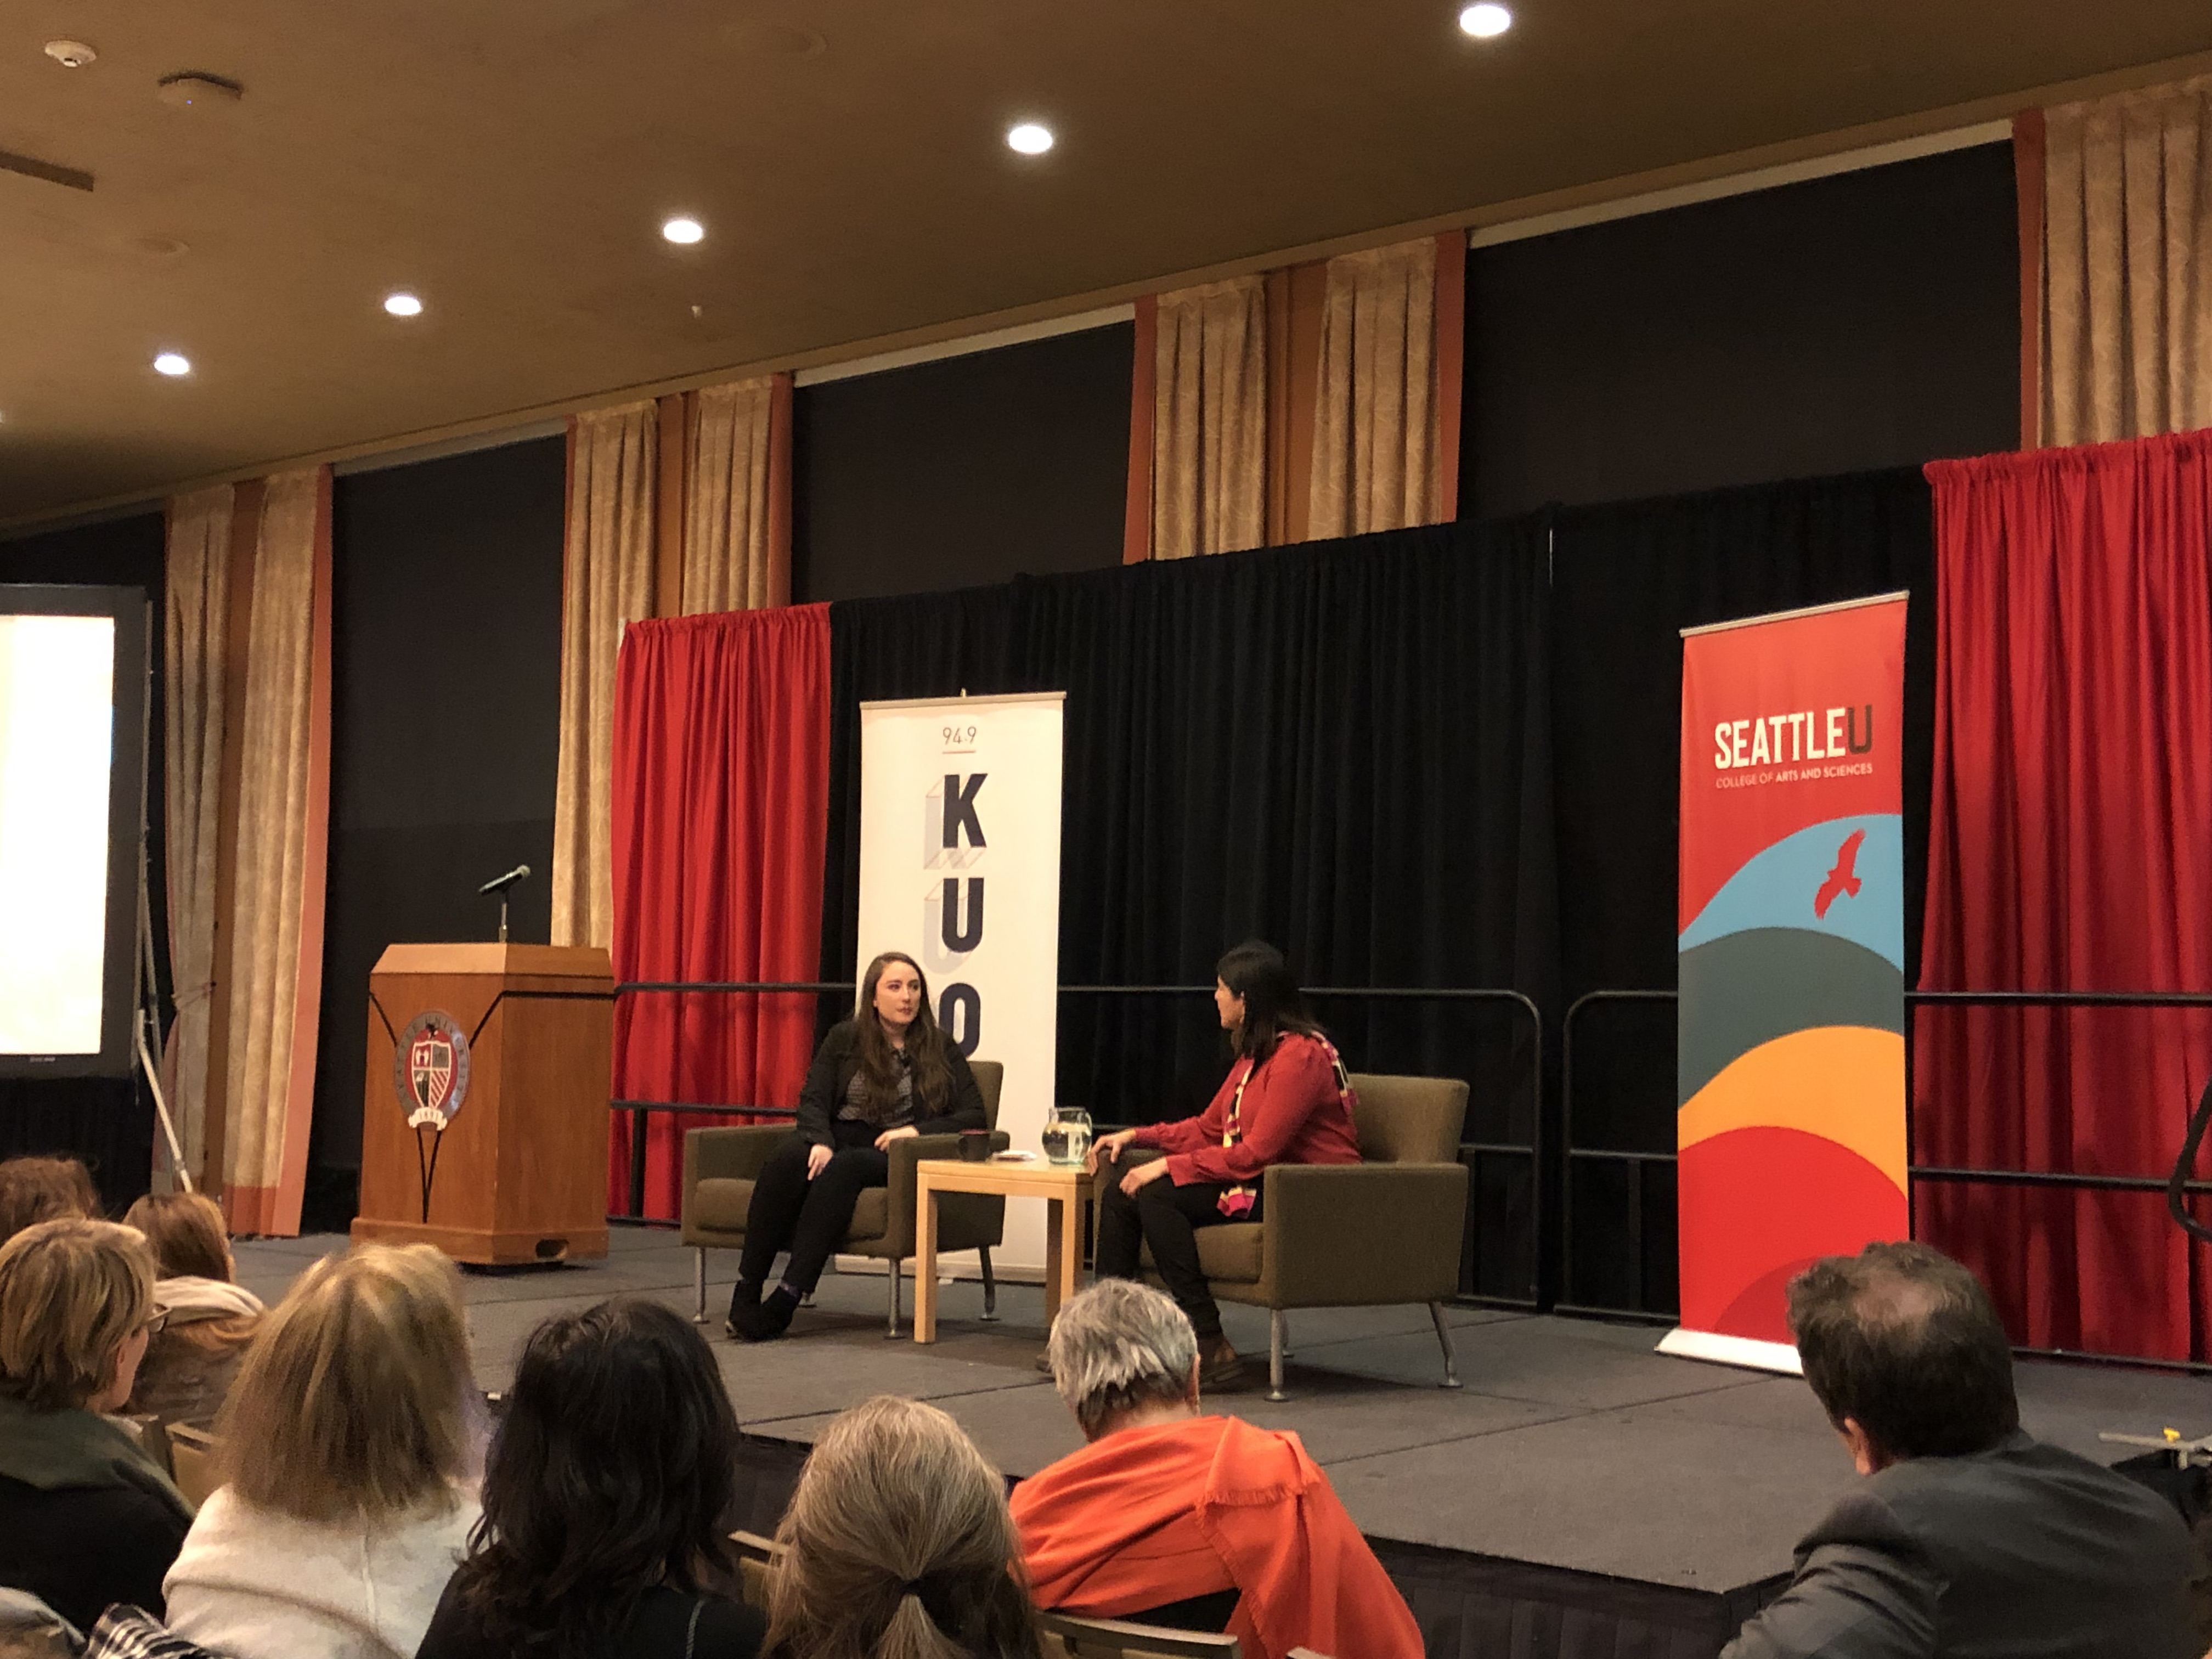 KUOW Journalist Discusses Sexual Abuse Coverage in #MeToo Era